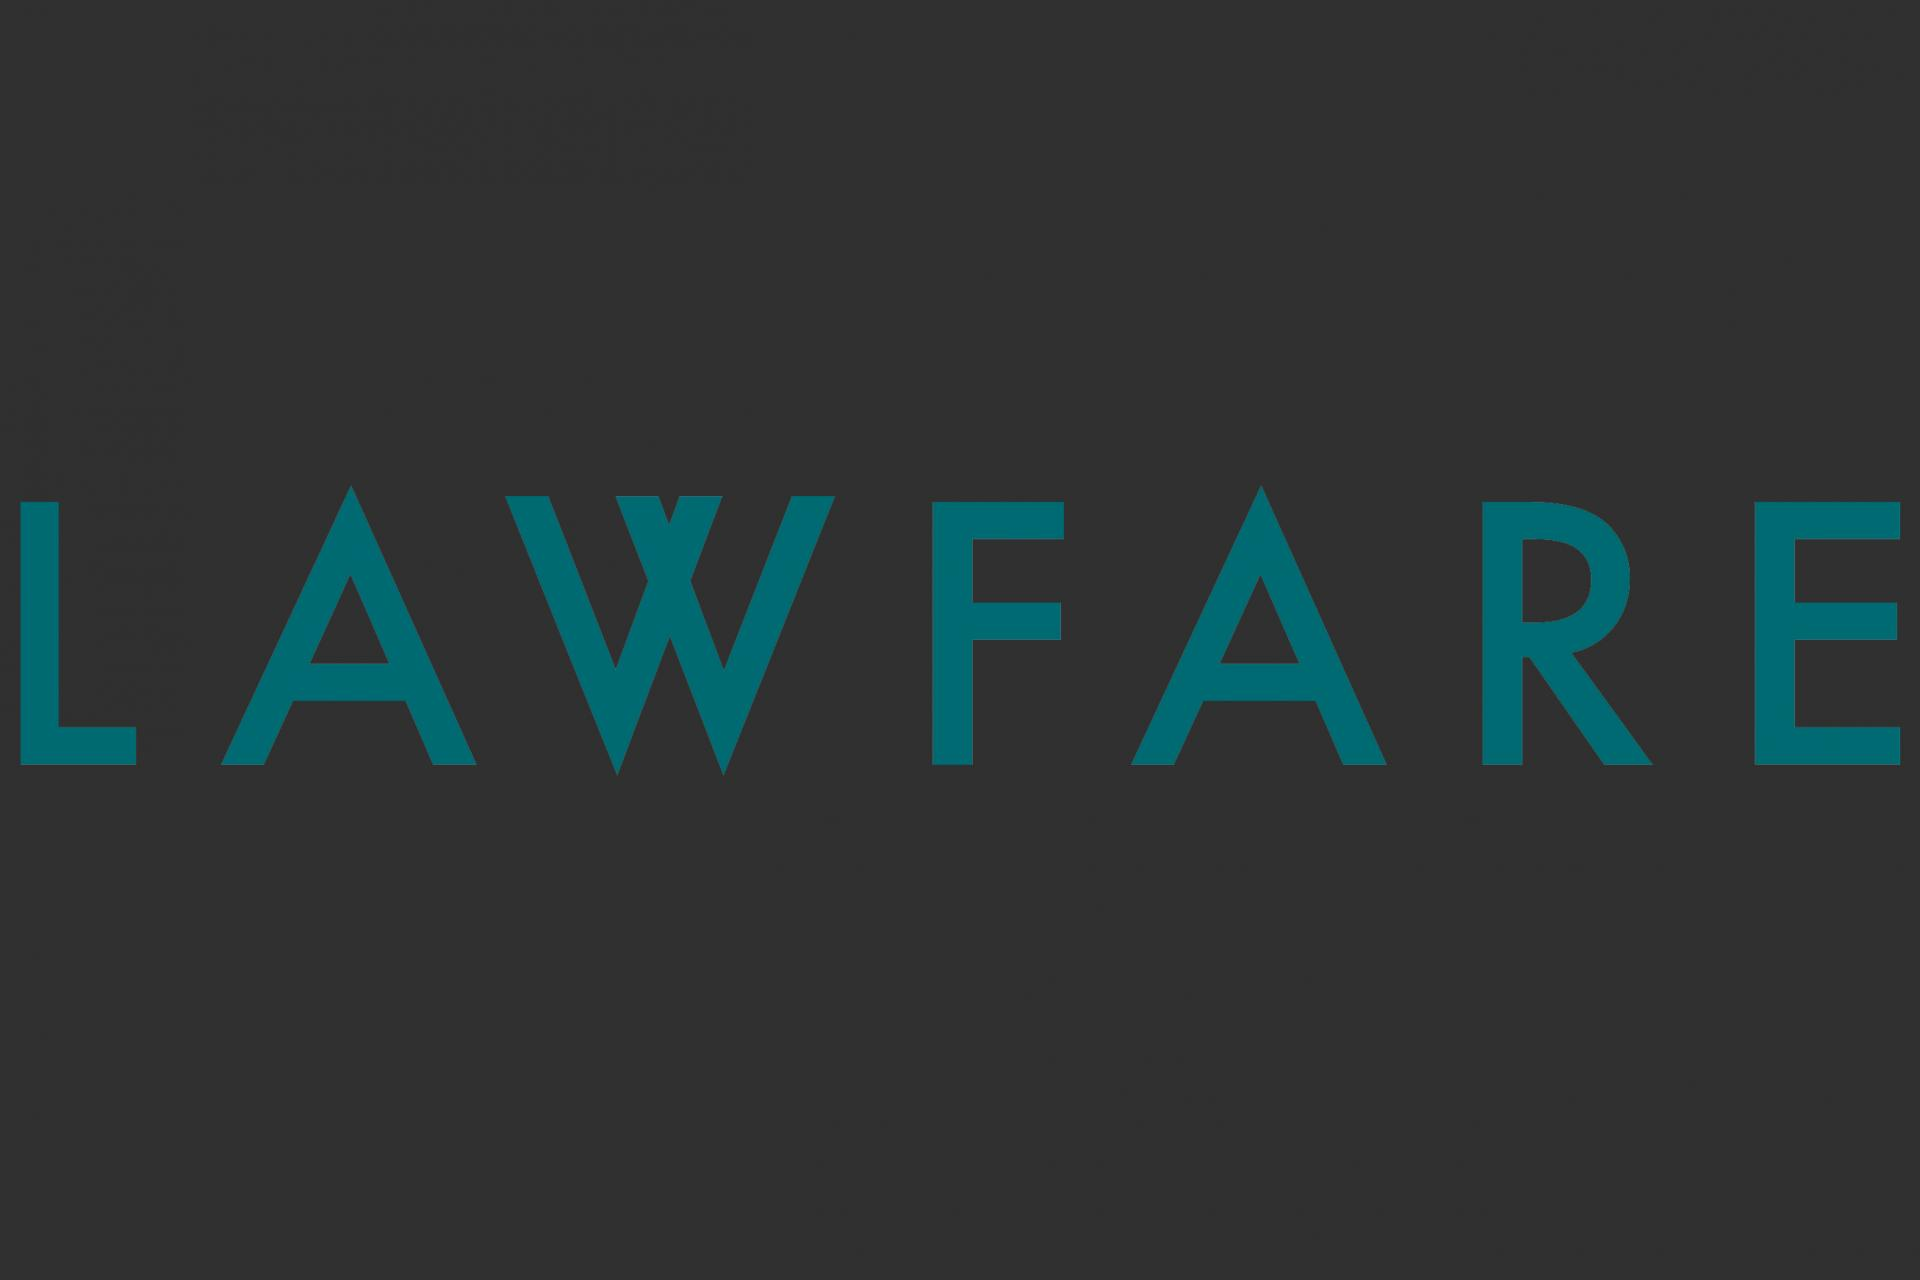 Lawfare blog logo